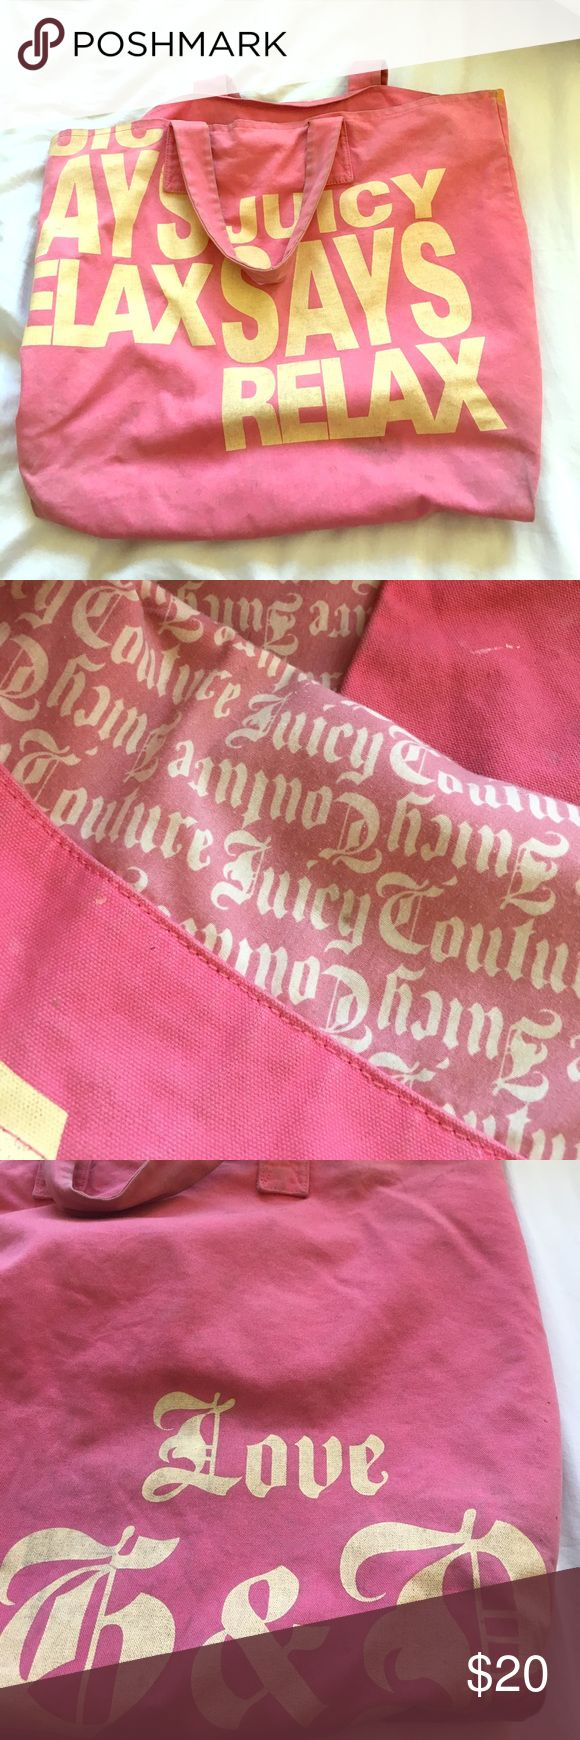 Juicy Couture Beach Tote Oversized beach bag Good condition  Priced to sell obo Juicy Couture Bags Totes